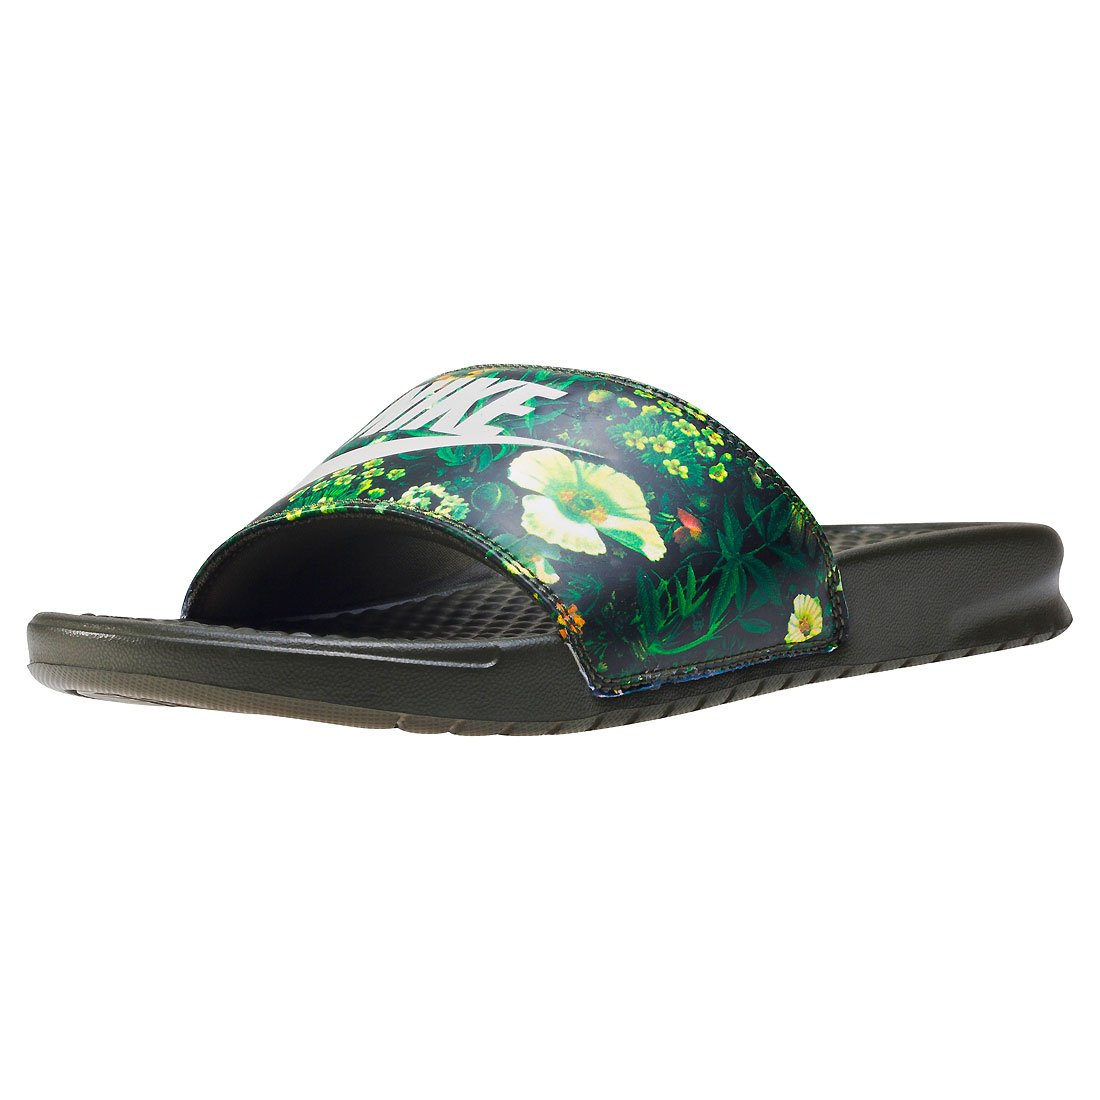 4e3d90c6b9e6 Nike Benassi Jdi Print Womens Slide Khaki Green - 7.5 UK  Amazon.co.uk   Shoes   Bags